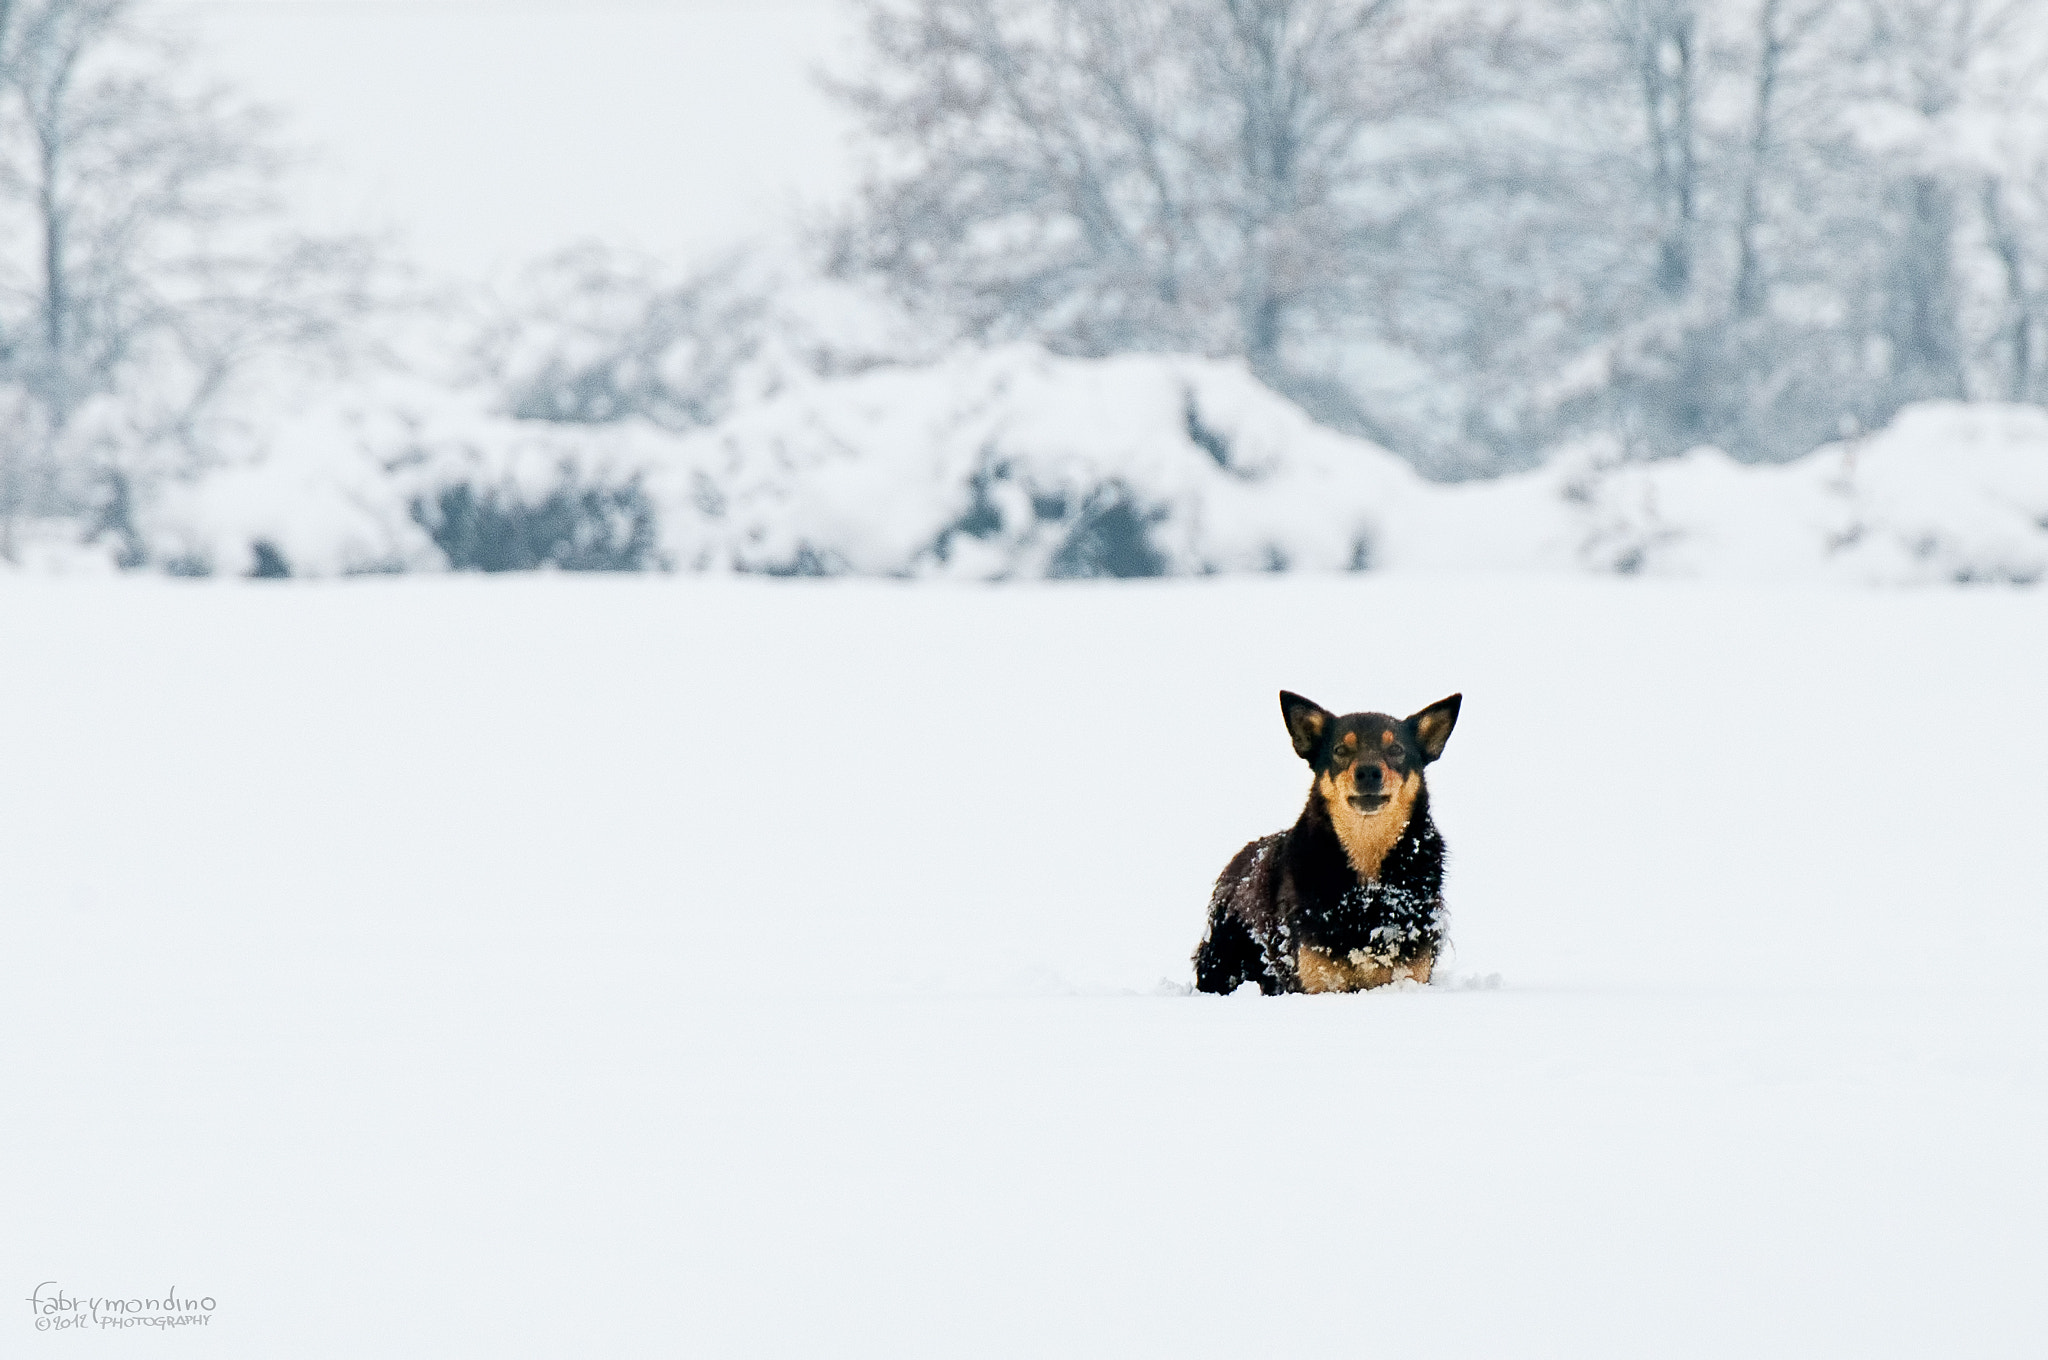 Photograph Dog in the snow by Fabrizio Michele Mondino on 500px